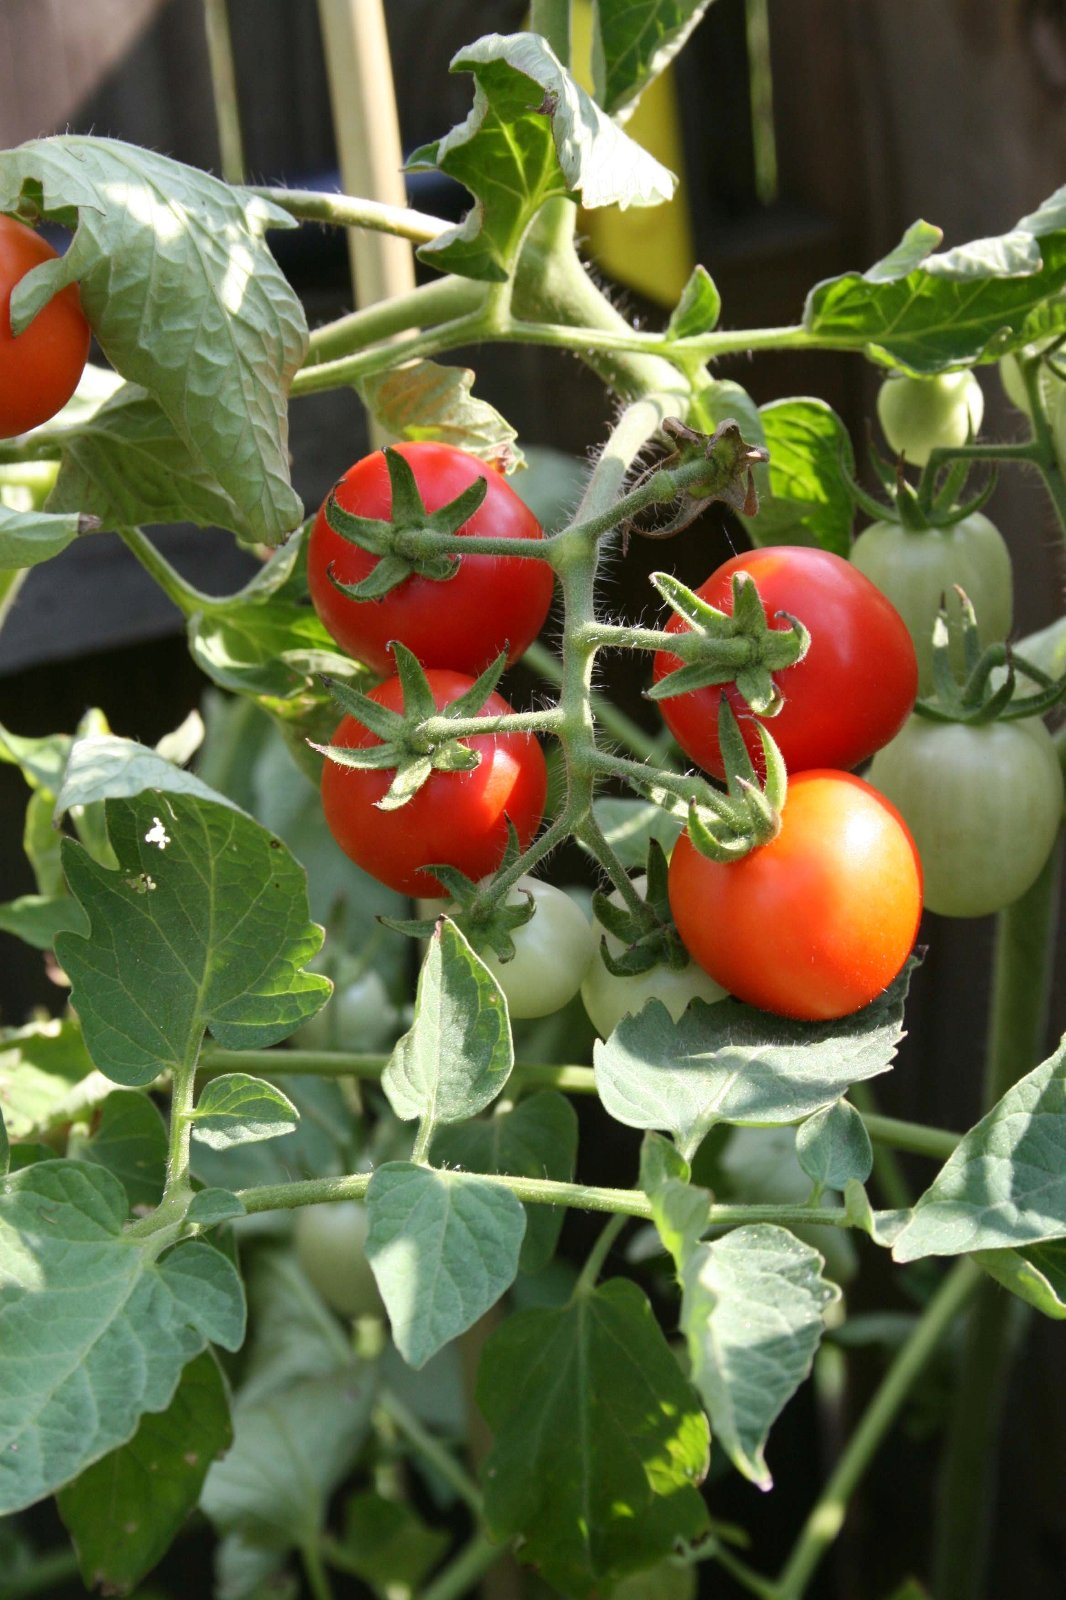 If you would like to have a few tomatoes ready to eat each week, UGA horticulturist Robert Westerfield recommends planting a few indeterminate varieties like 'Better Boy', 'Beefsteak' or 'Big Beef'.